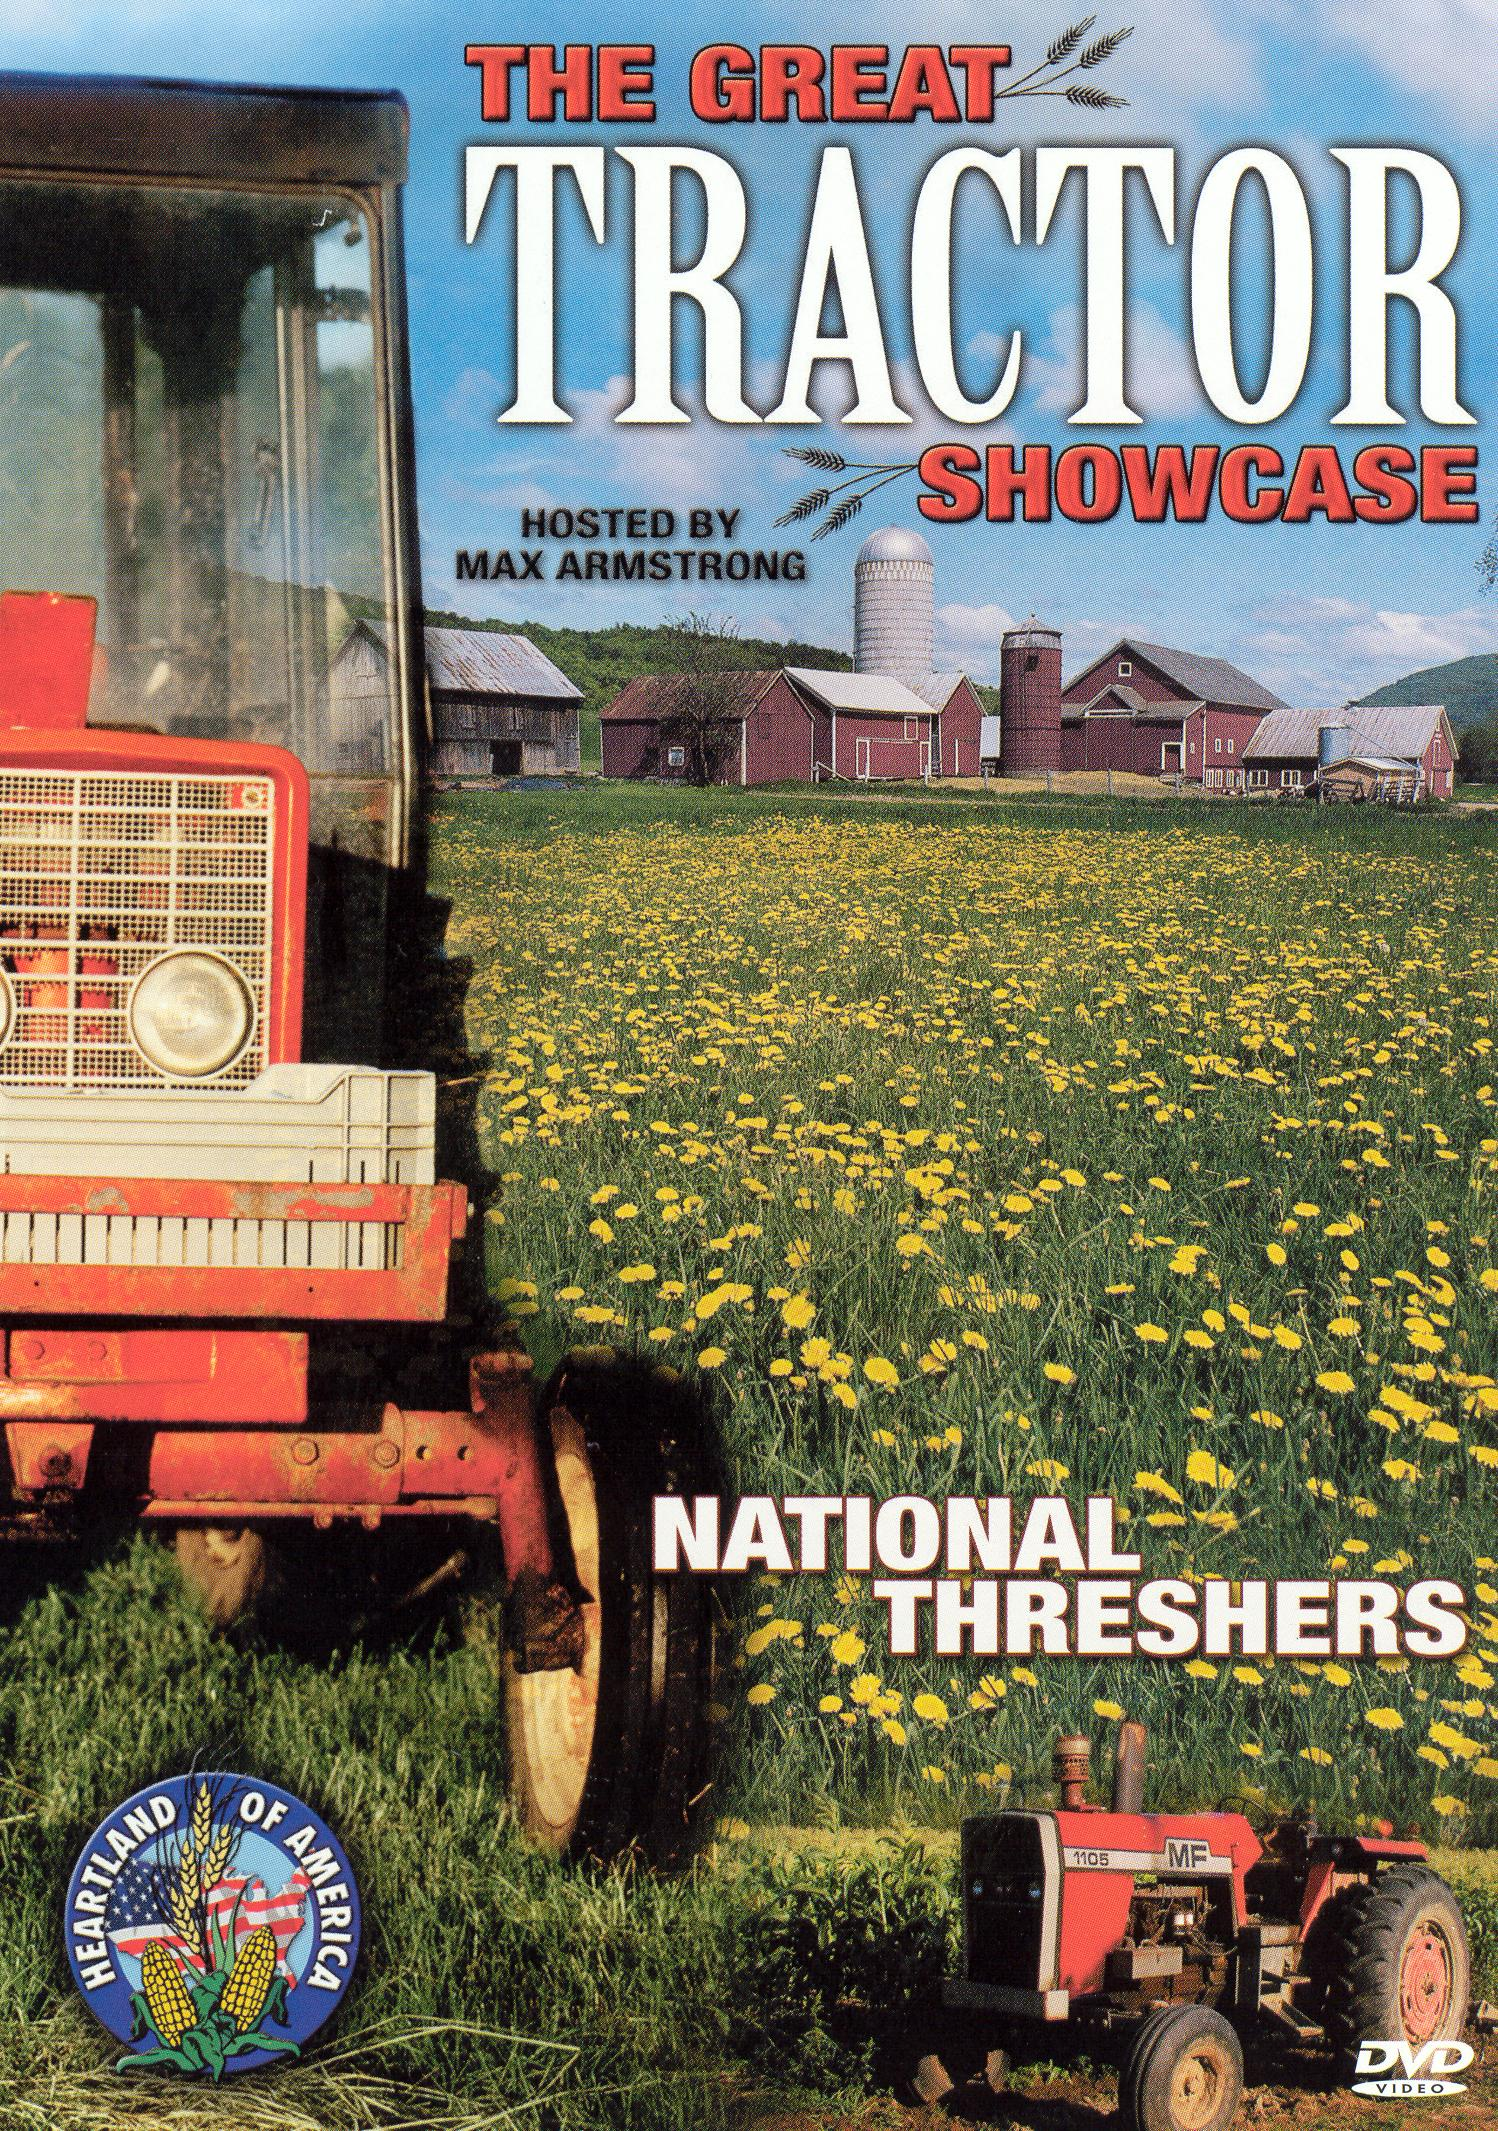 The Great Tractor Showcase: National Threshers